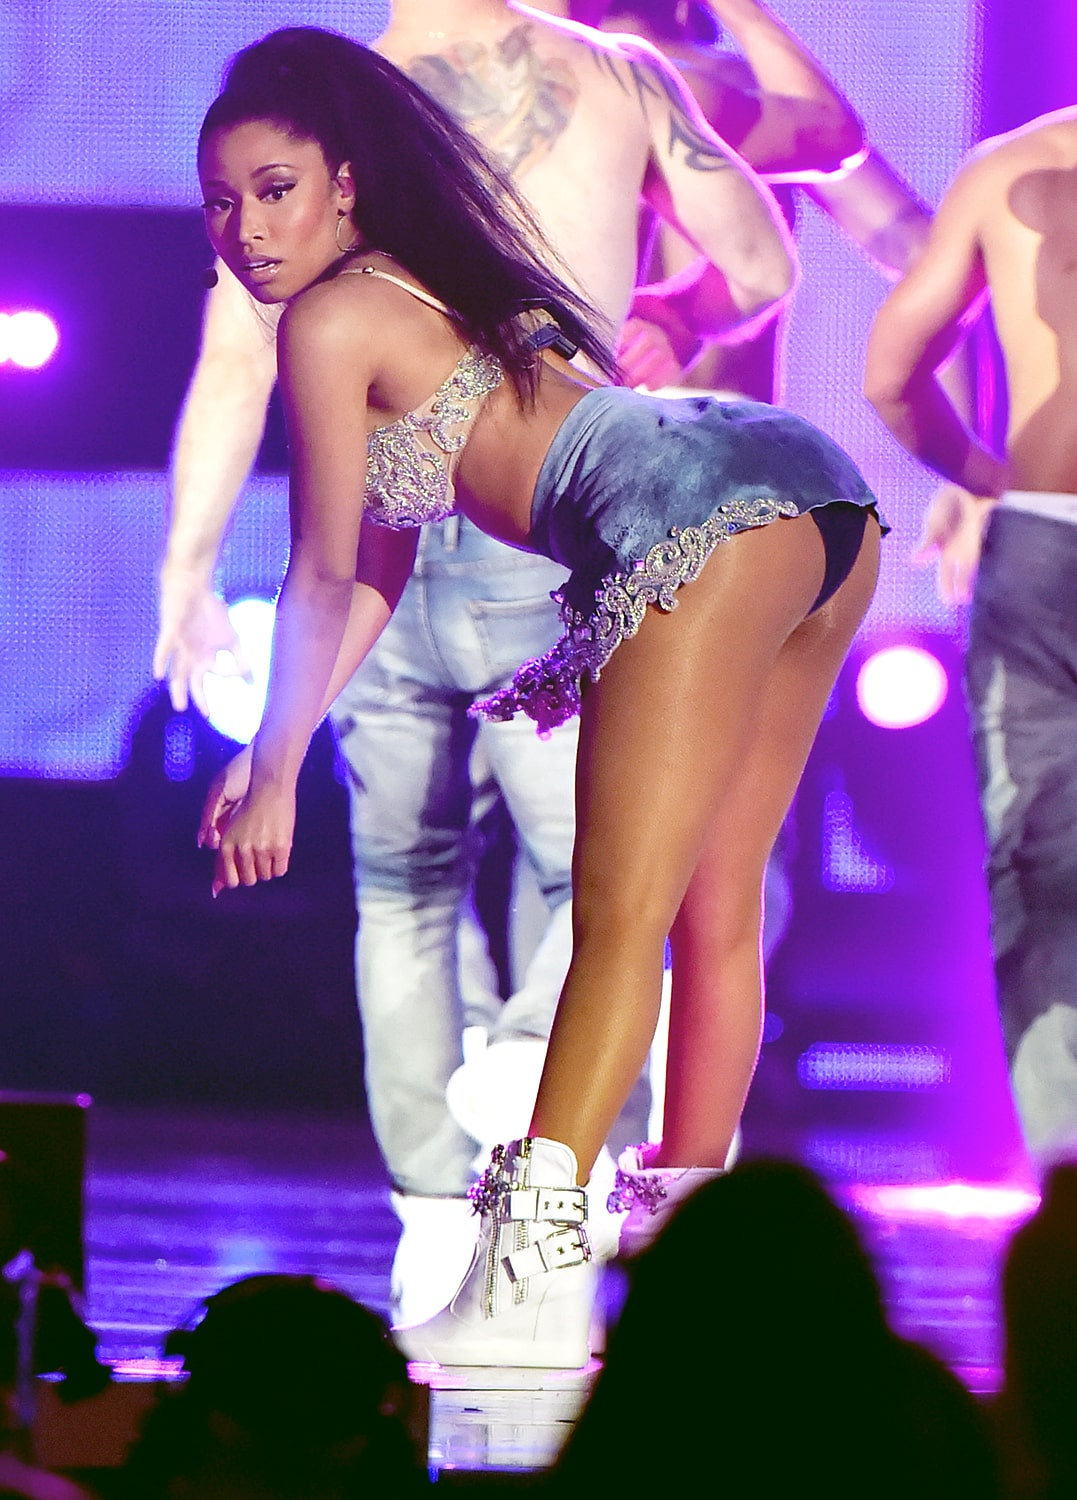 nicki minaj awesome booty pics